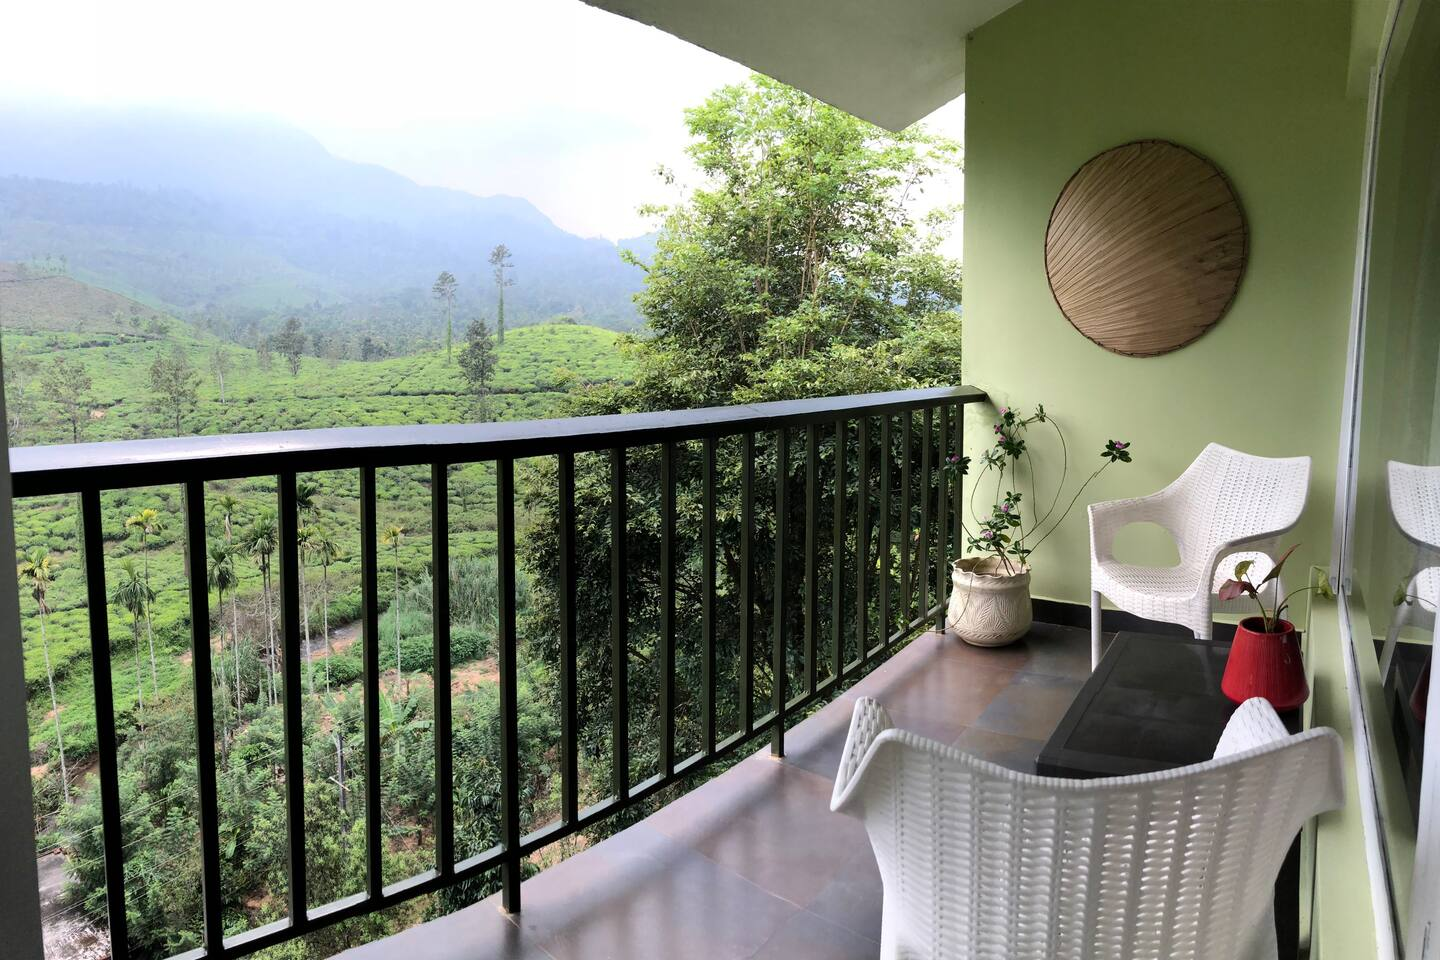 both of our balconies ( bedroom and living room)  open to the amazing view of Chembra peak, the tallest peak of Wayanad!